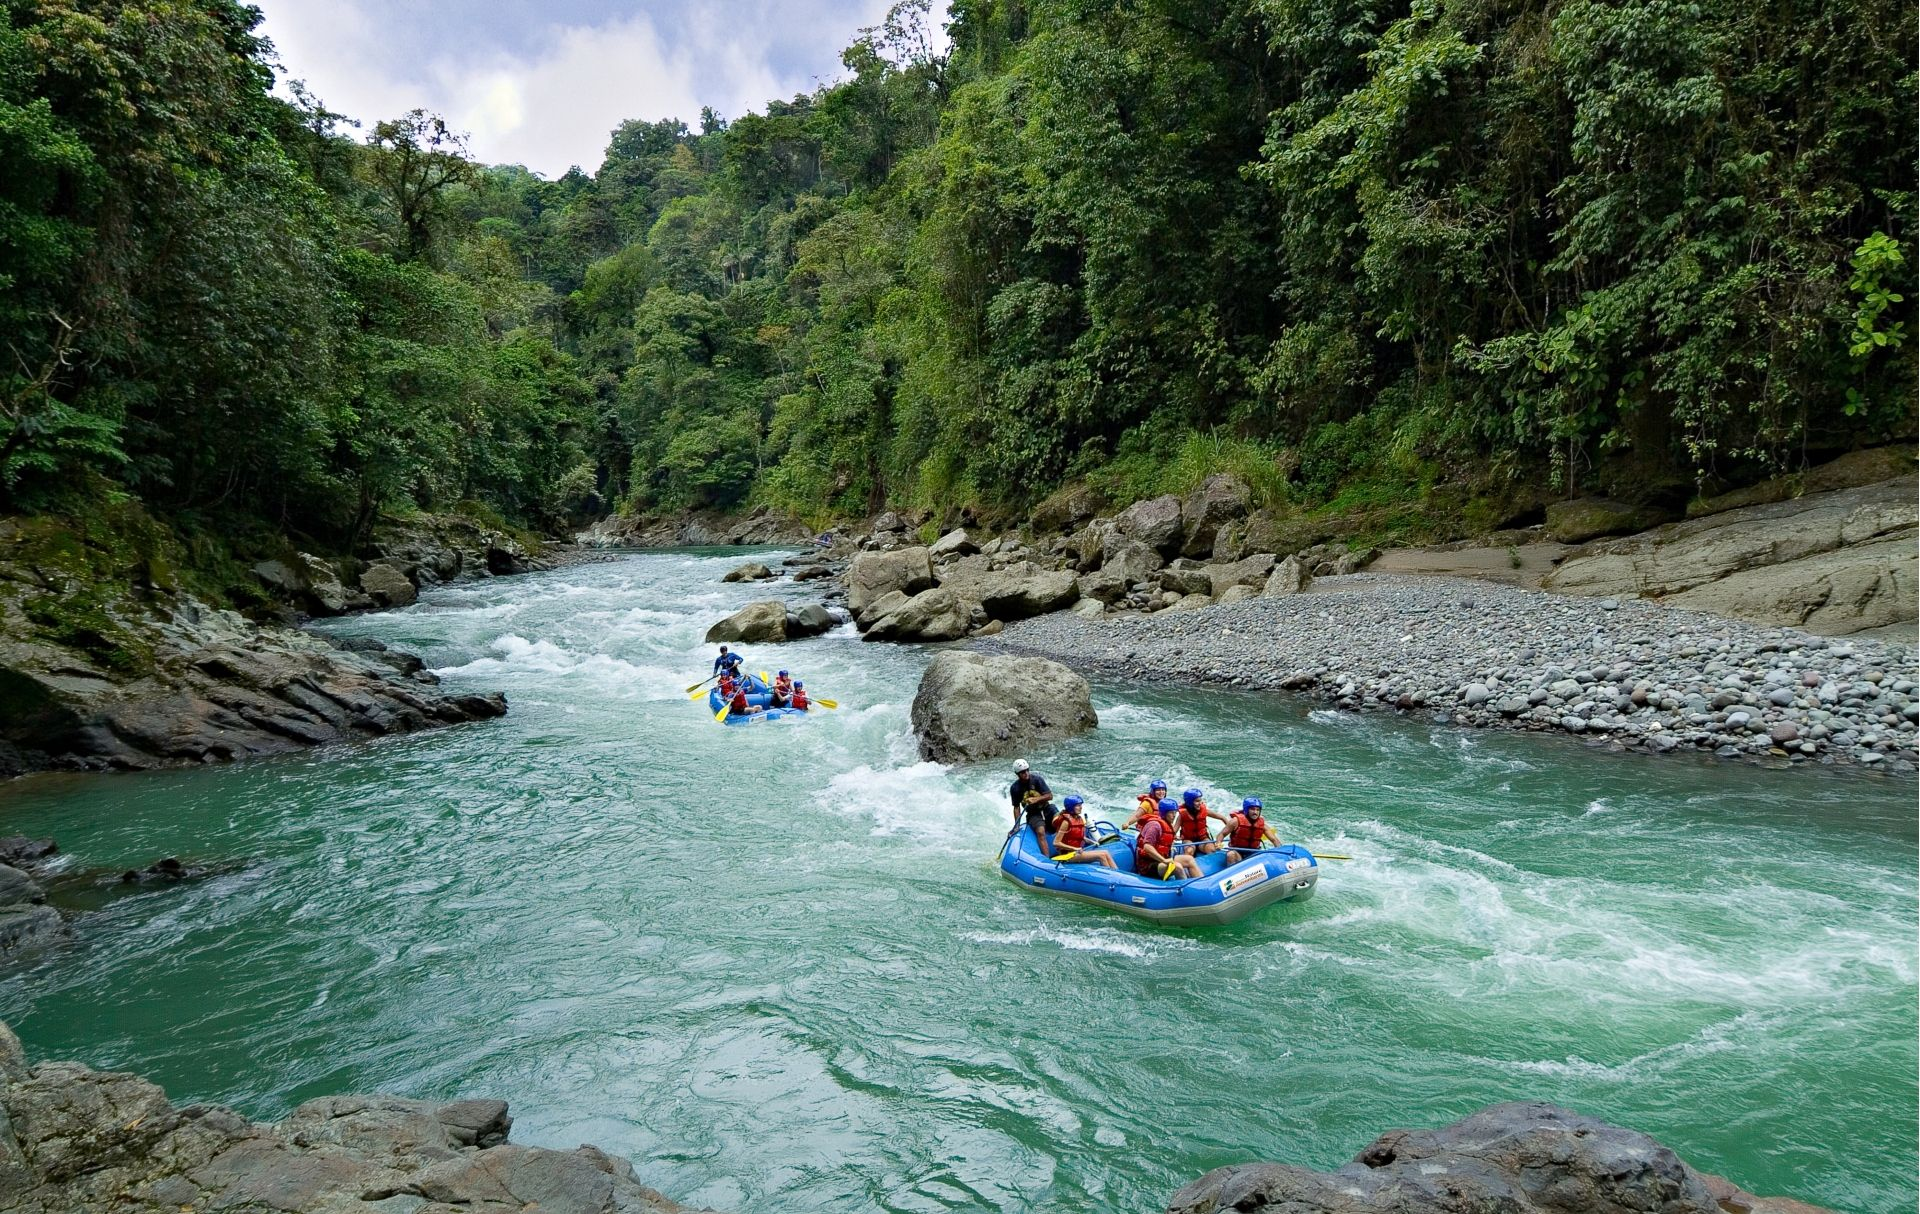 Rafting in the jungle